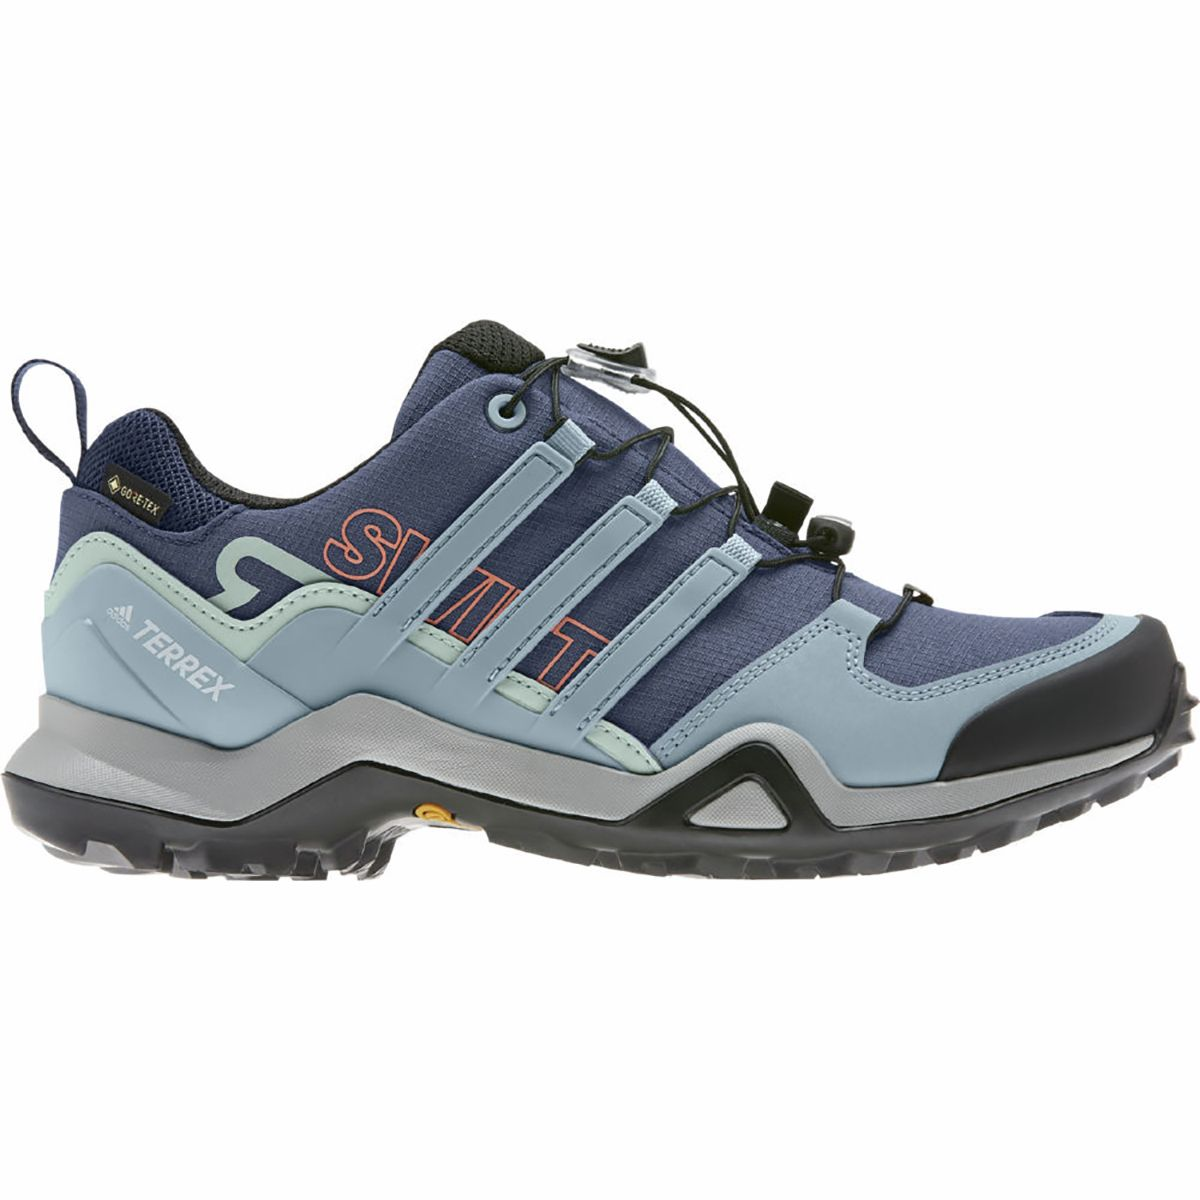 llevar a cabo otro abuela  Adidas Outdoor Terrex Swift R2 GTX Hiking Shoe - Women's | Steep & Cheap